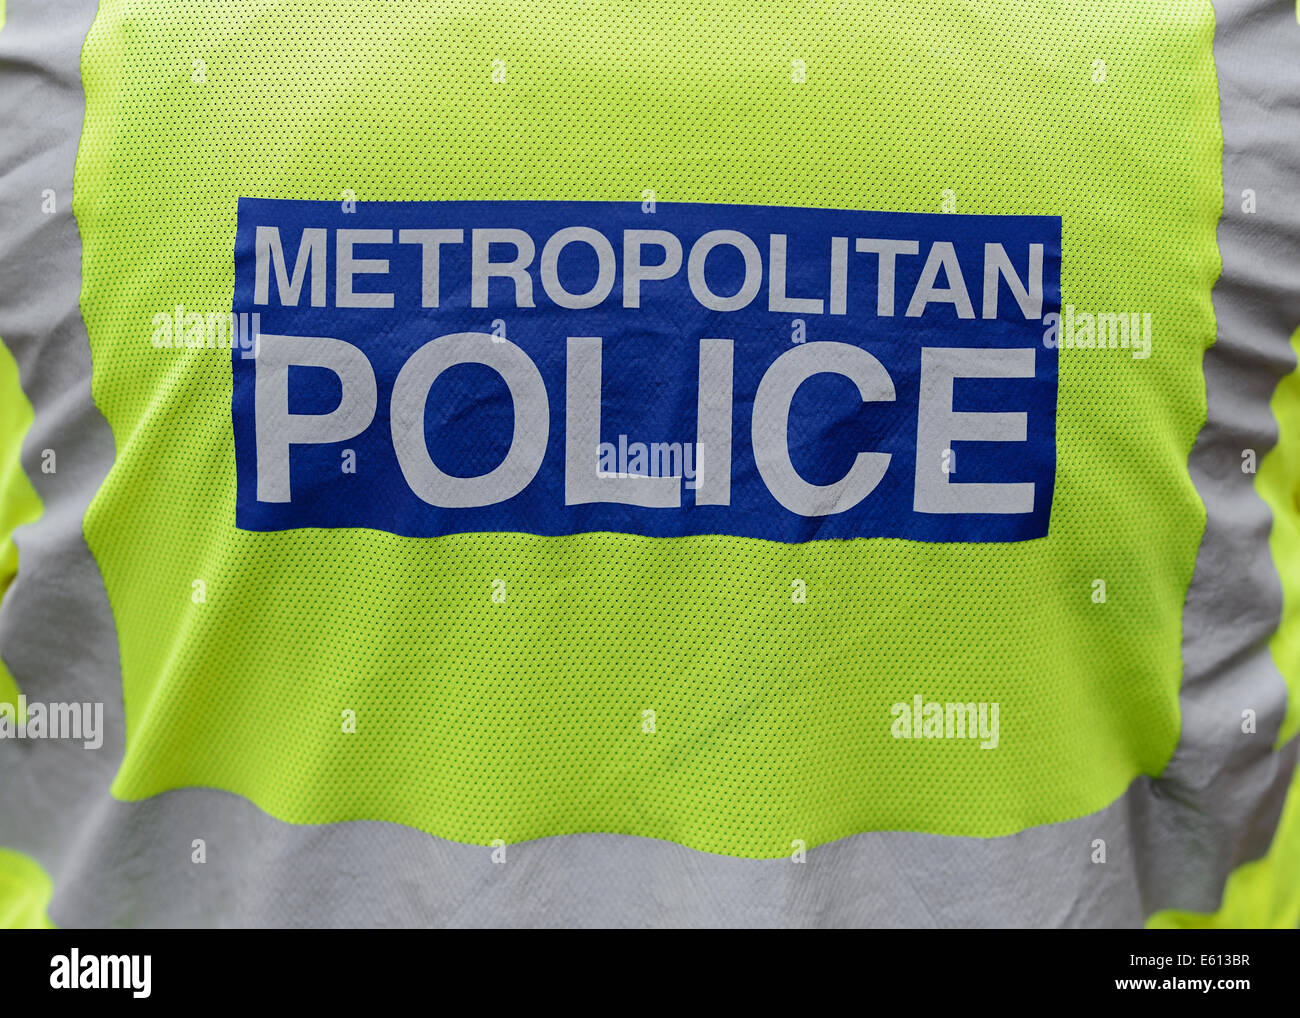 Metropolitan Police Officer, Rear View, Close Up. - Stock Image